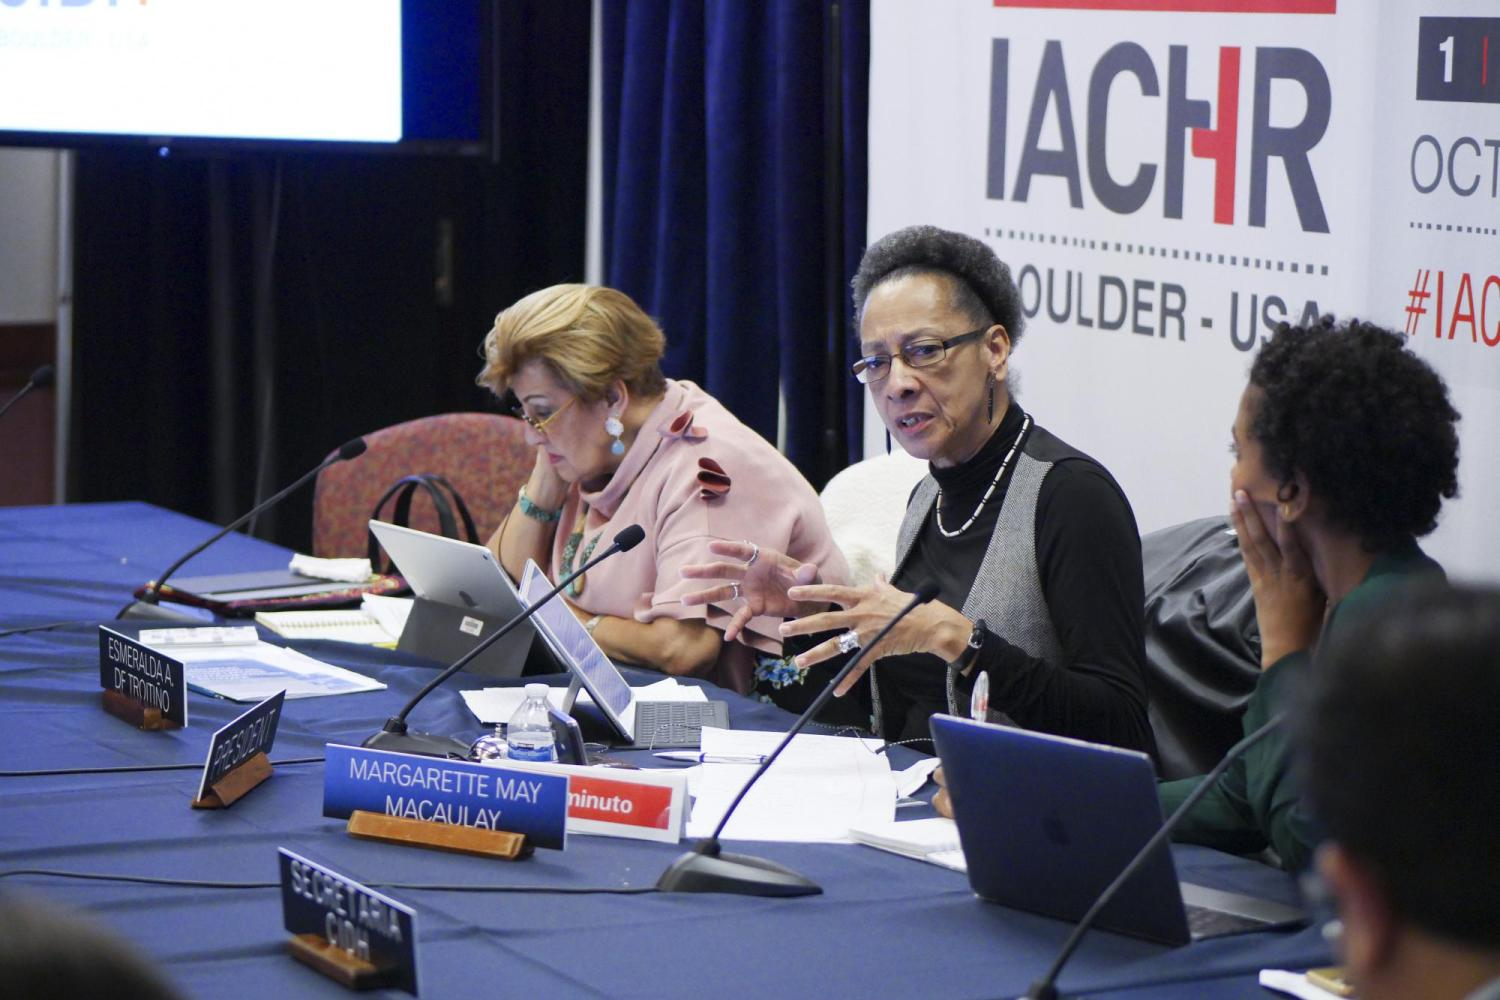 IACHR session